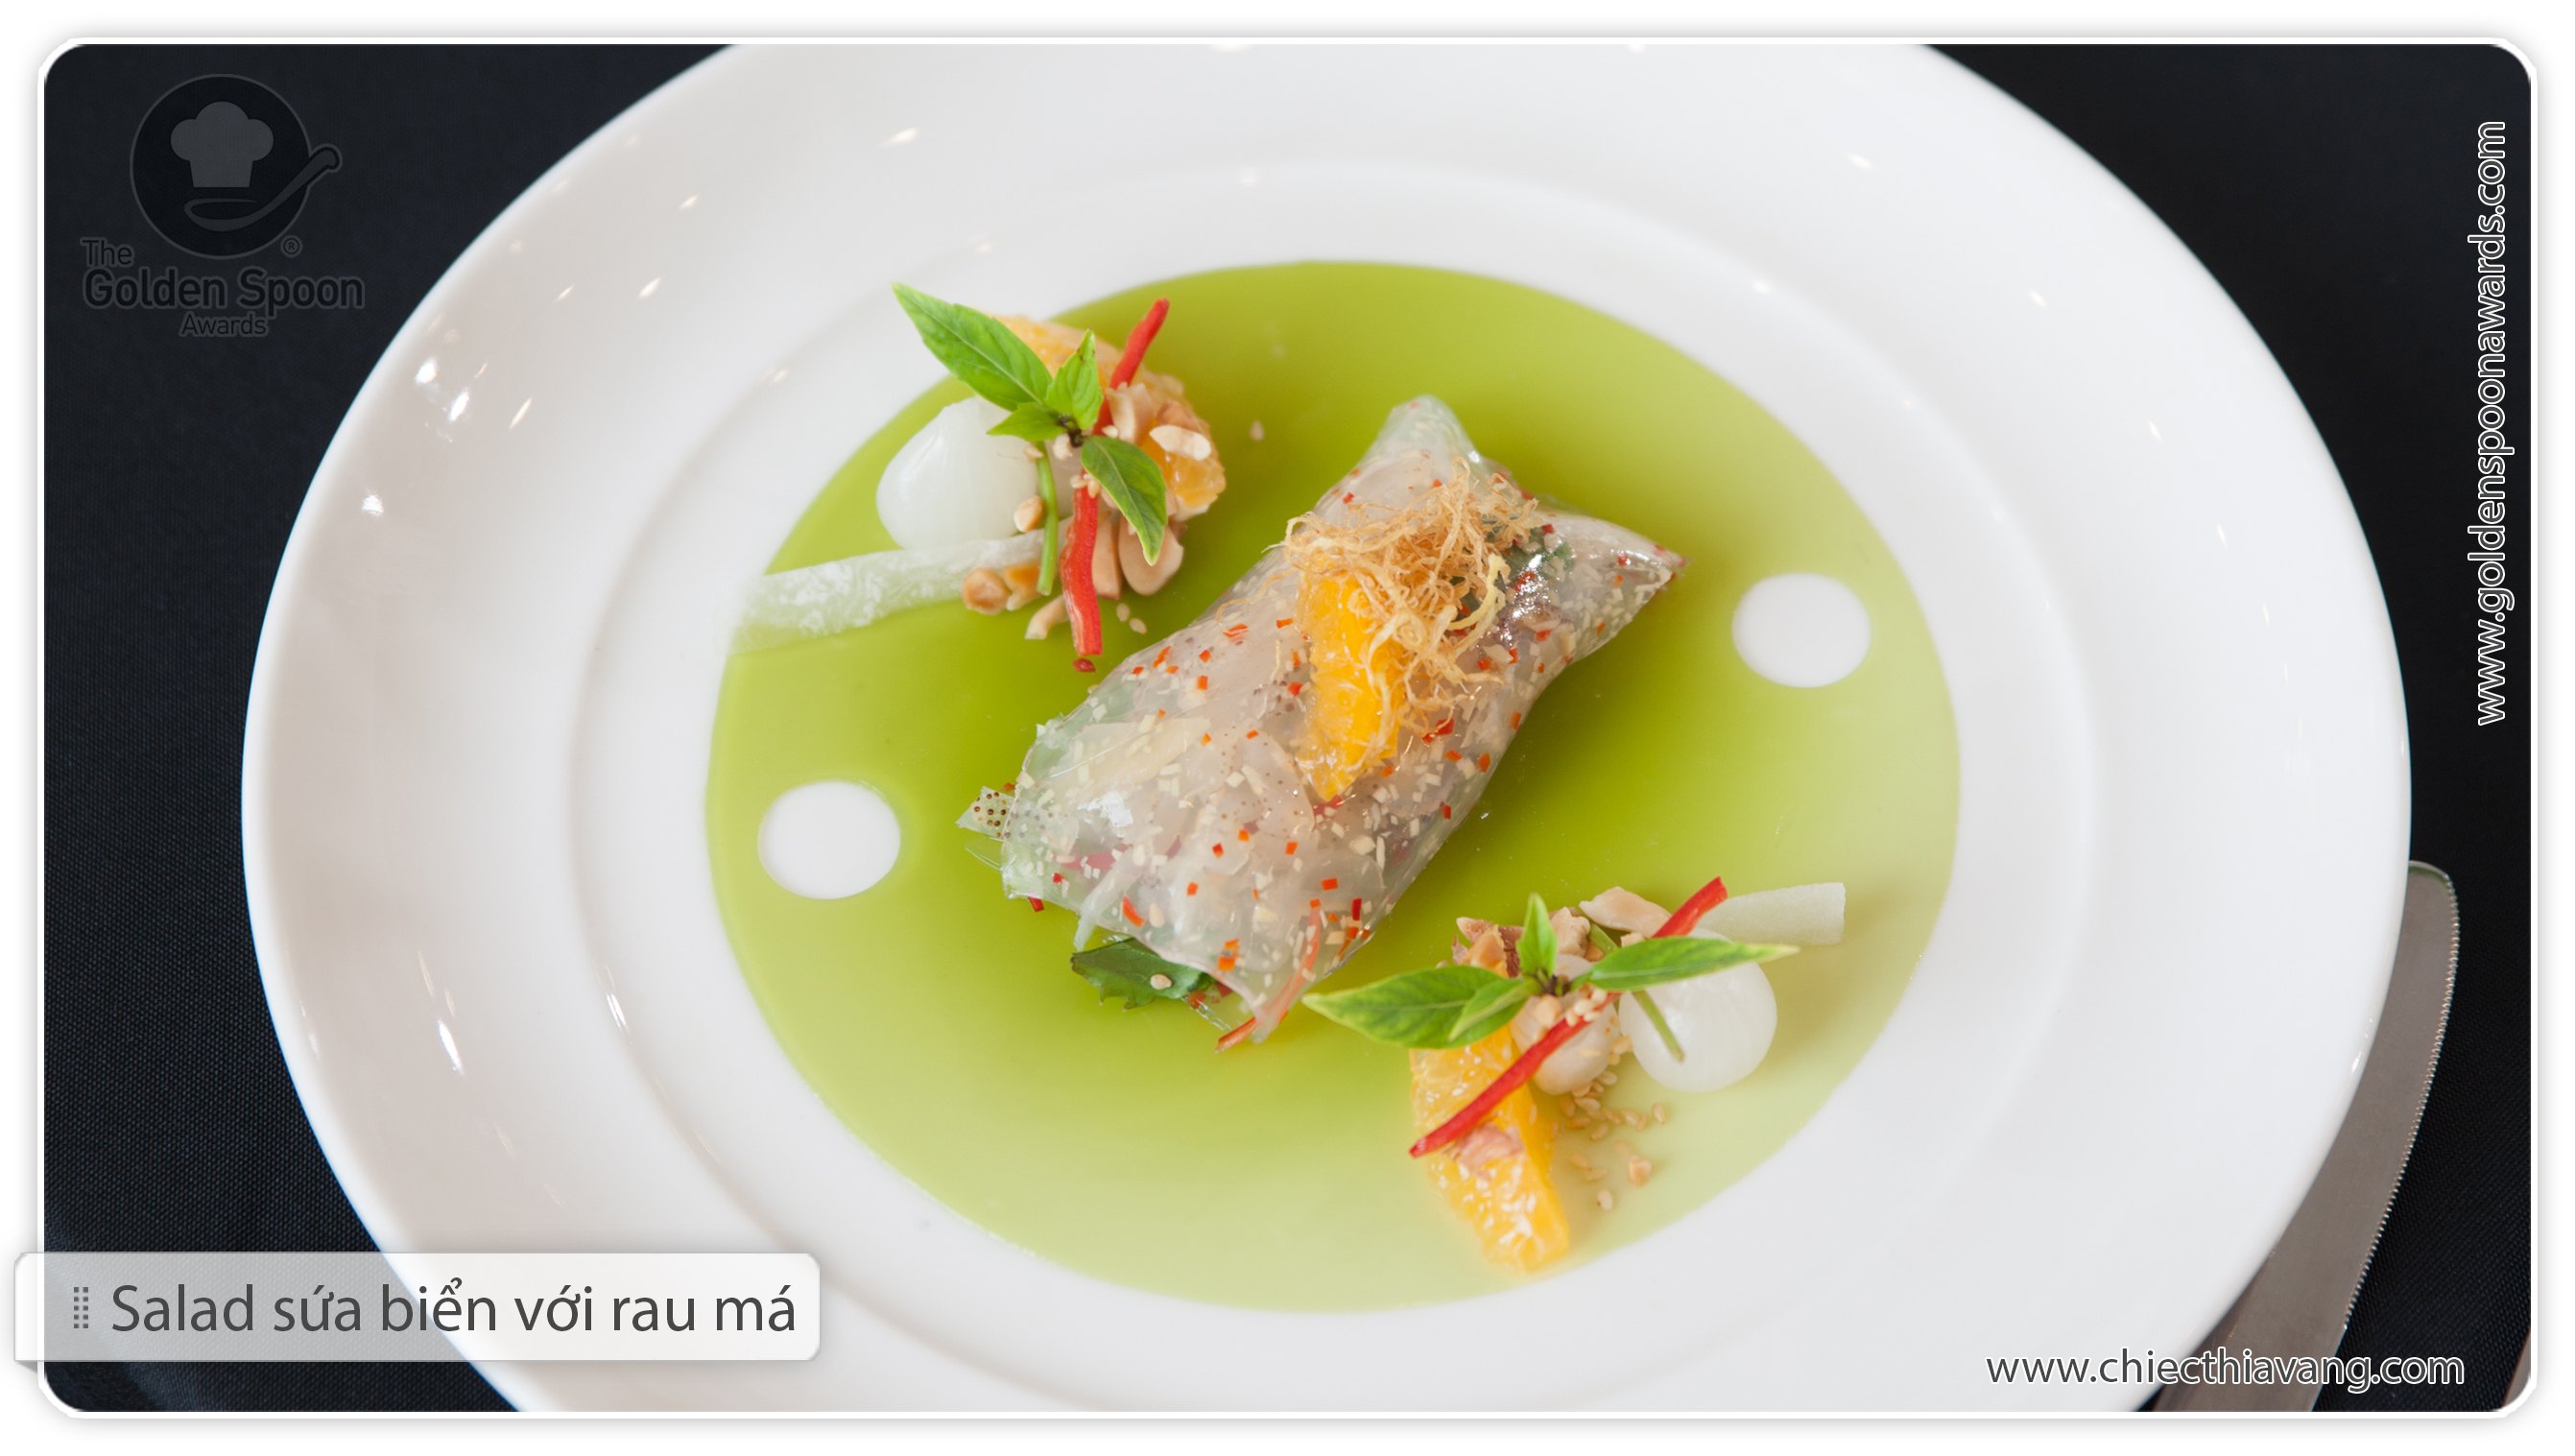 Jellyfish salad with pennywort made by Lotte Hotel Hanoi in the semi-final round - northern region, 2015 Golden Spoon contest